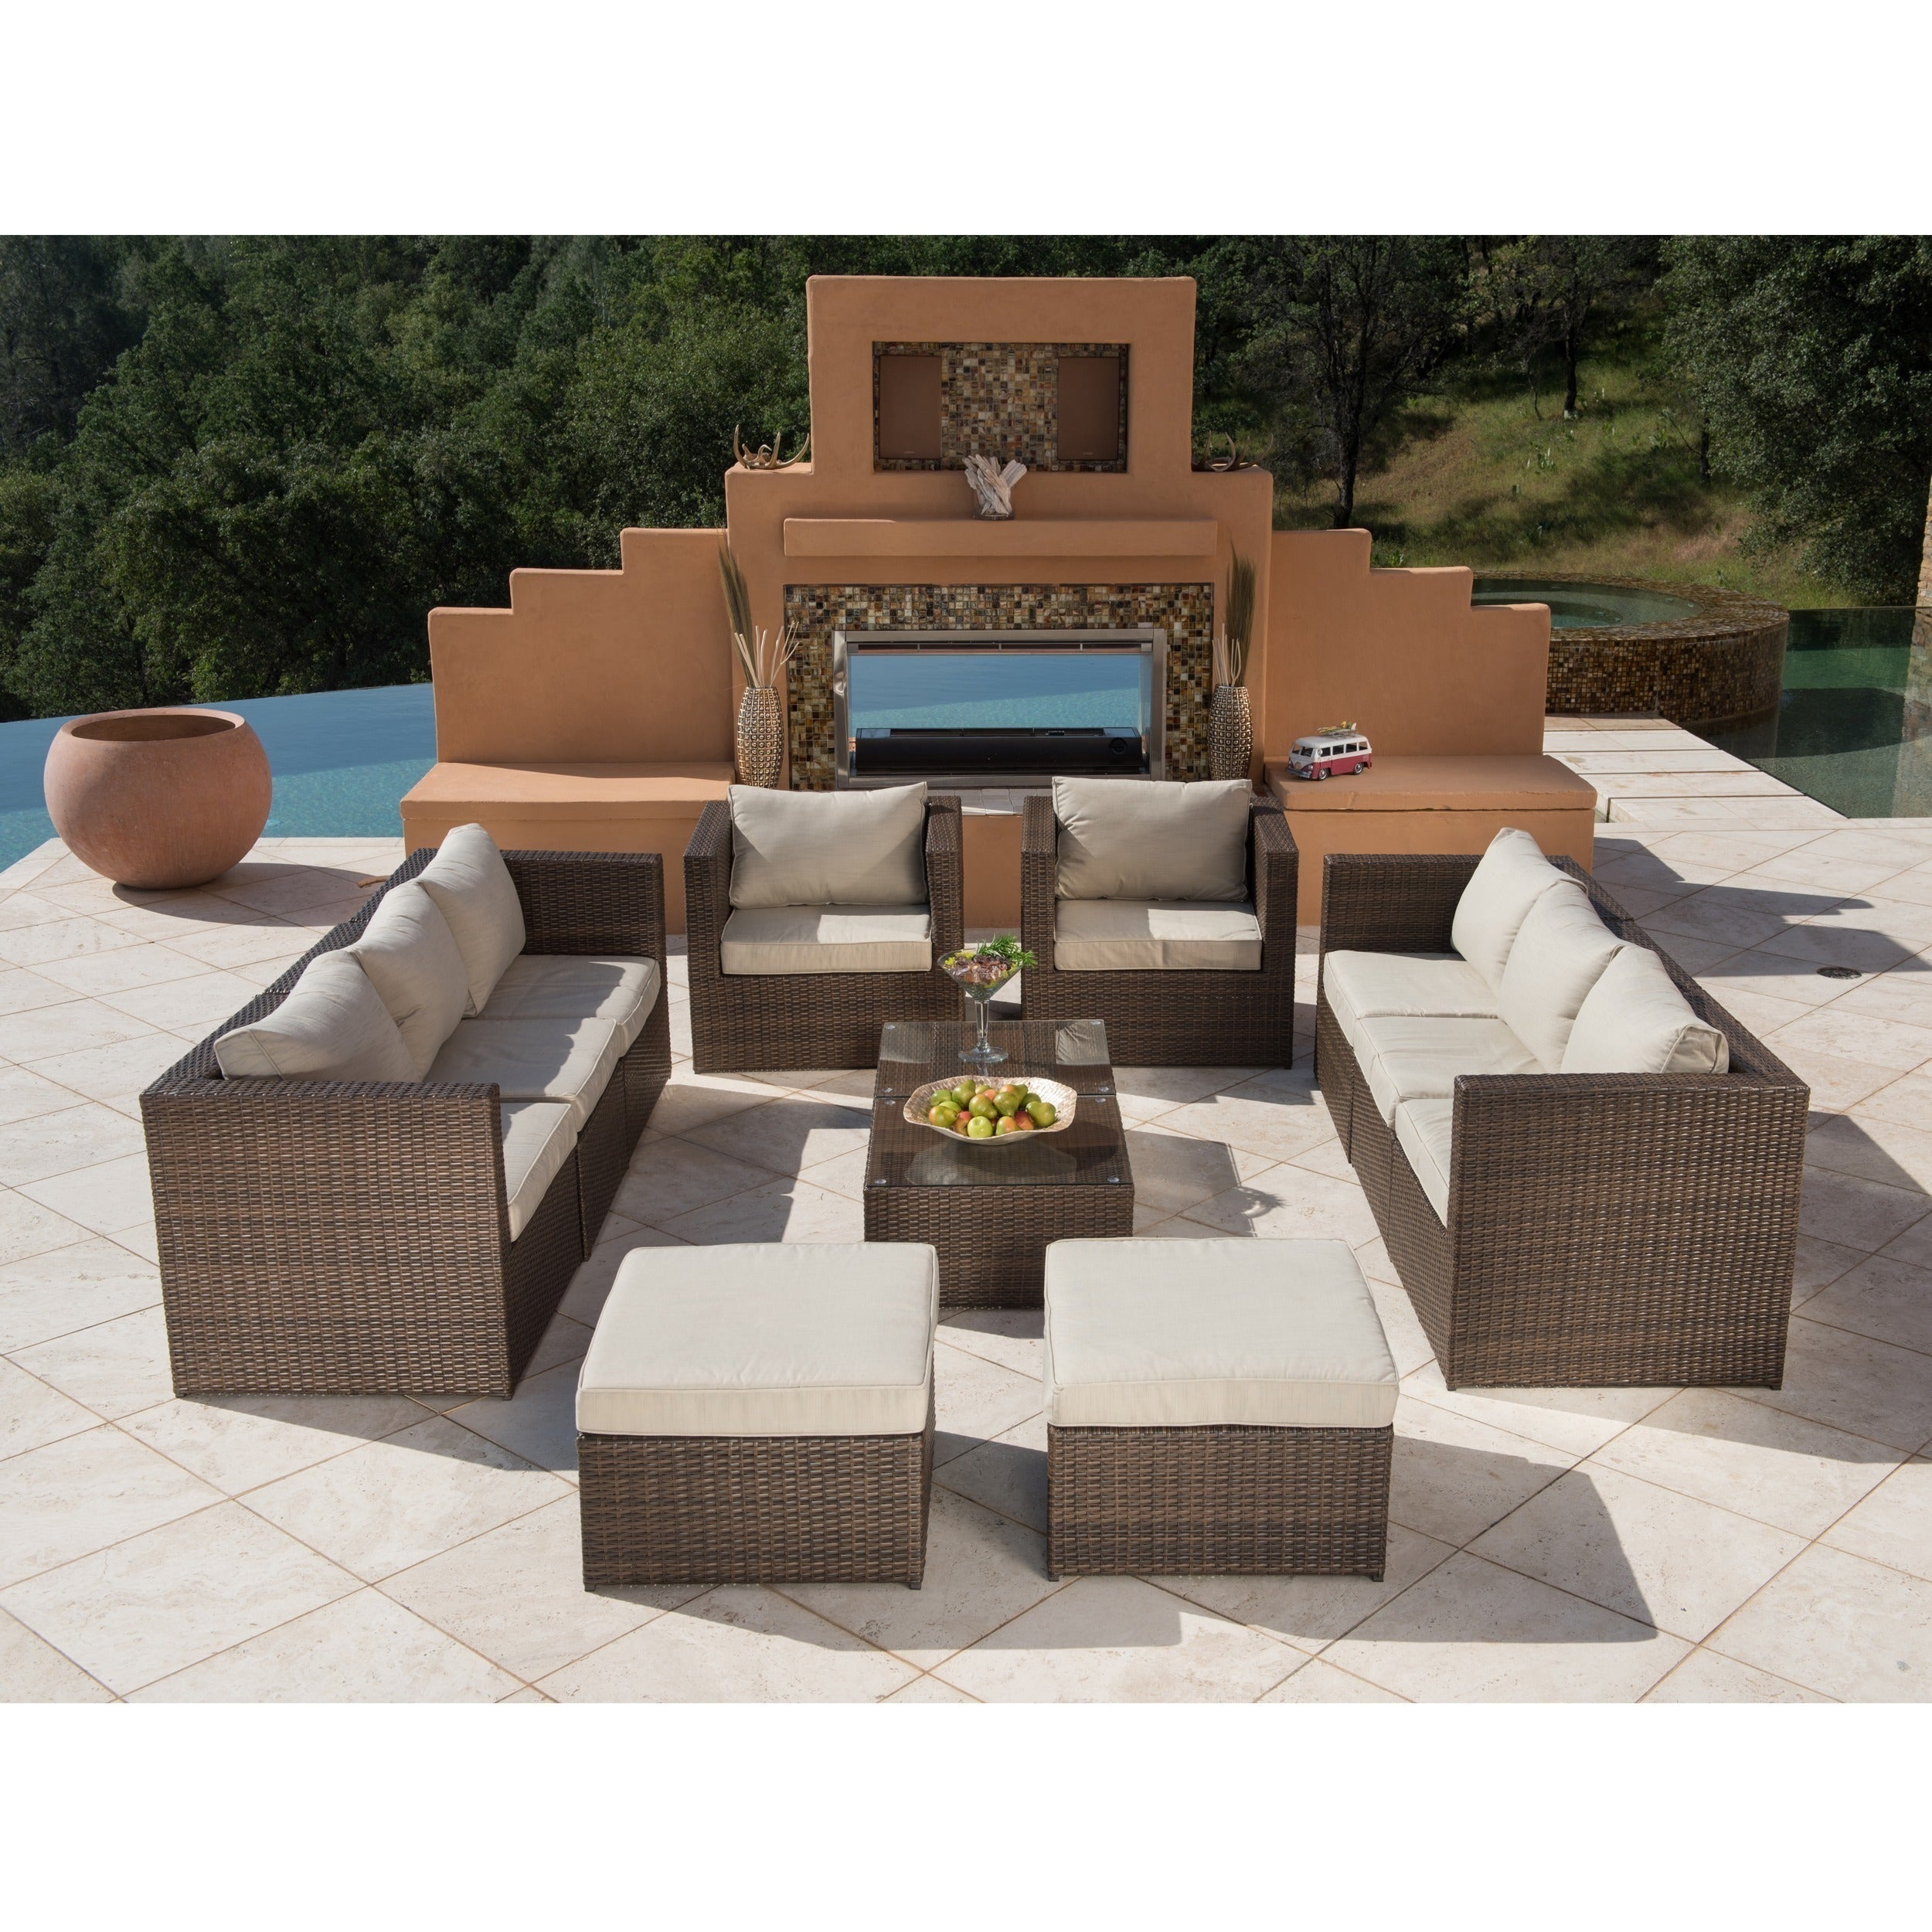 Delicieux Shop Corvus Trey 12 Piece Dark Brown Wicker Patio Furniture Set With Glass  Top   On Sale   Free Shipping Today   Overstock.com   11047230